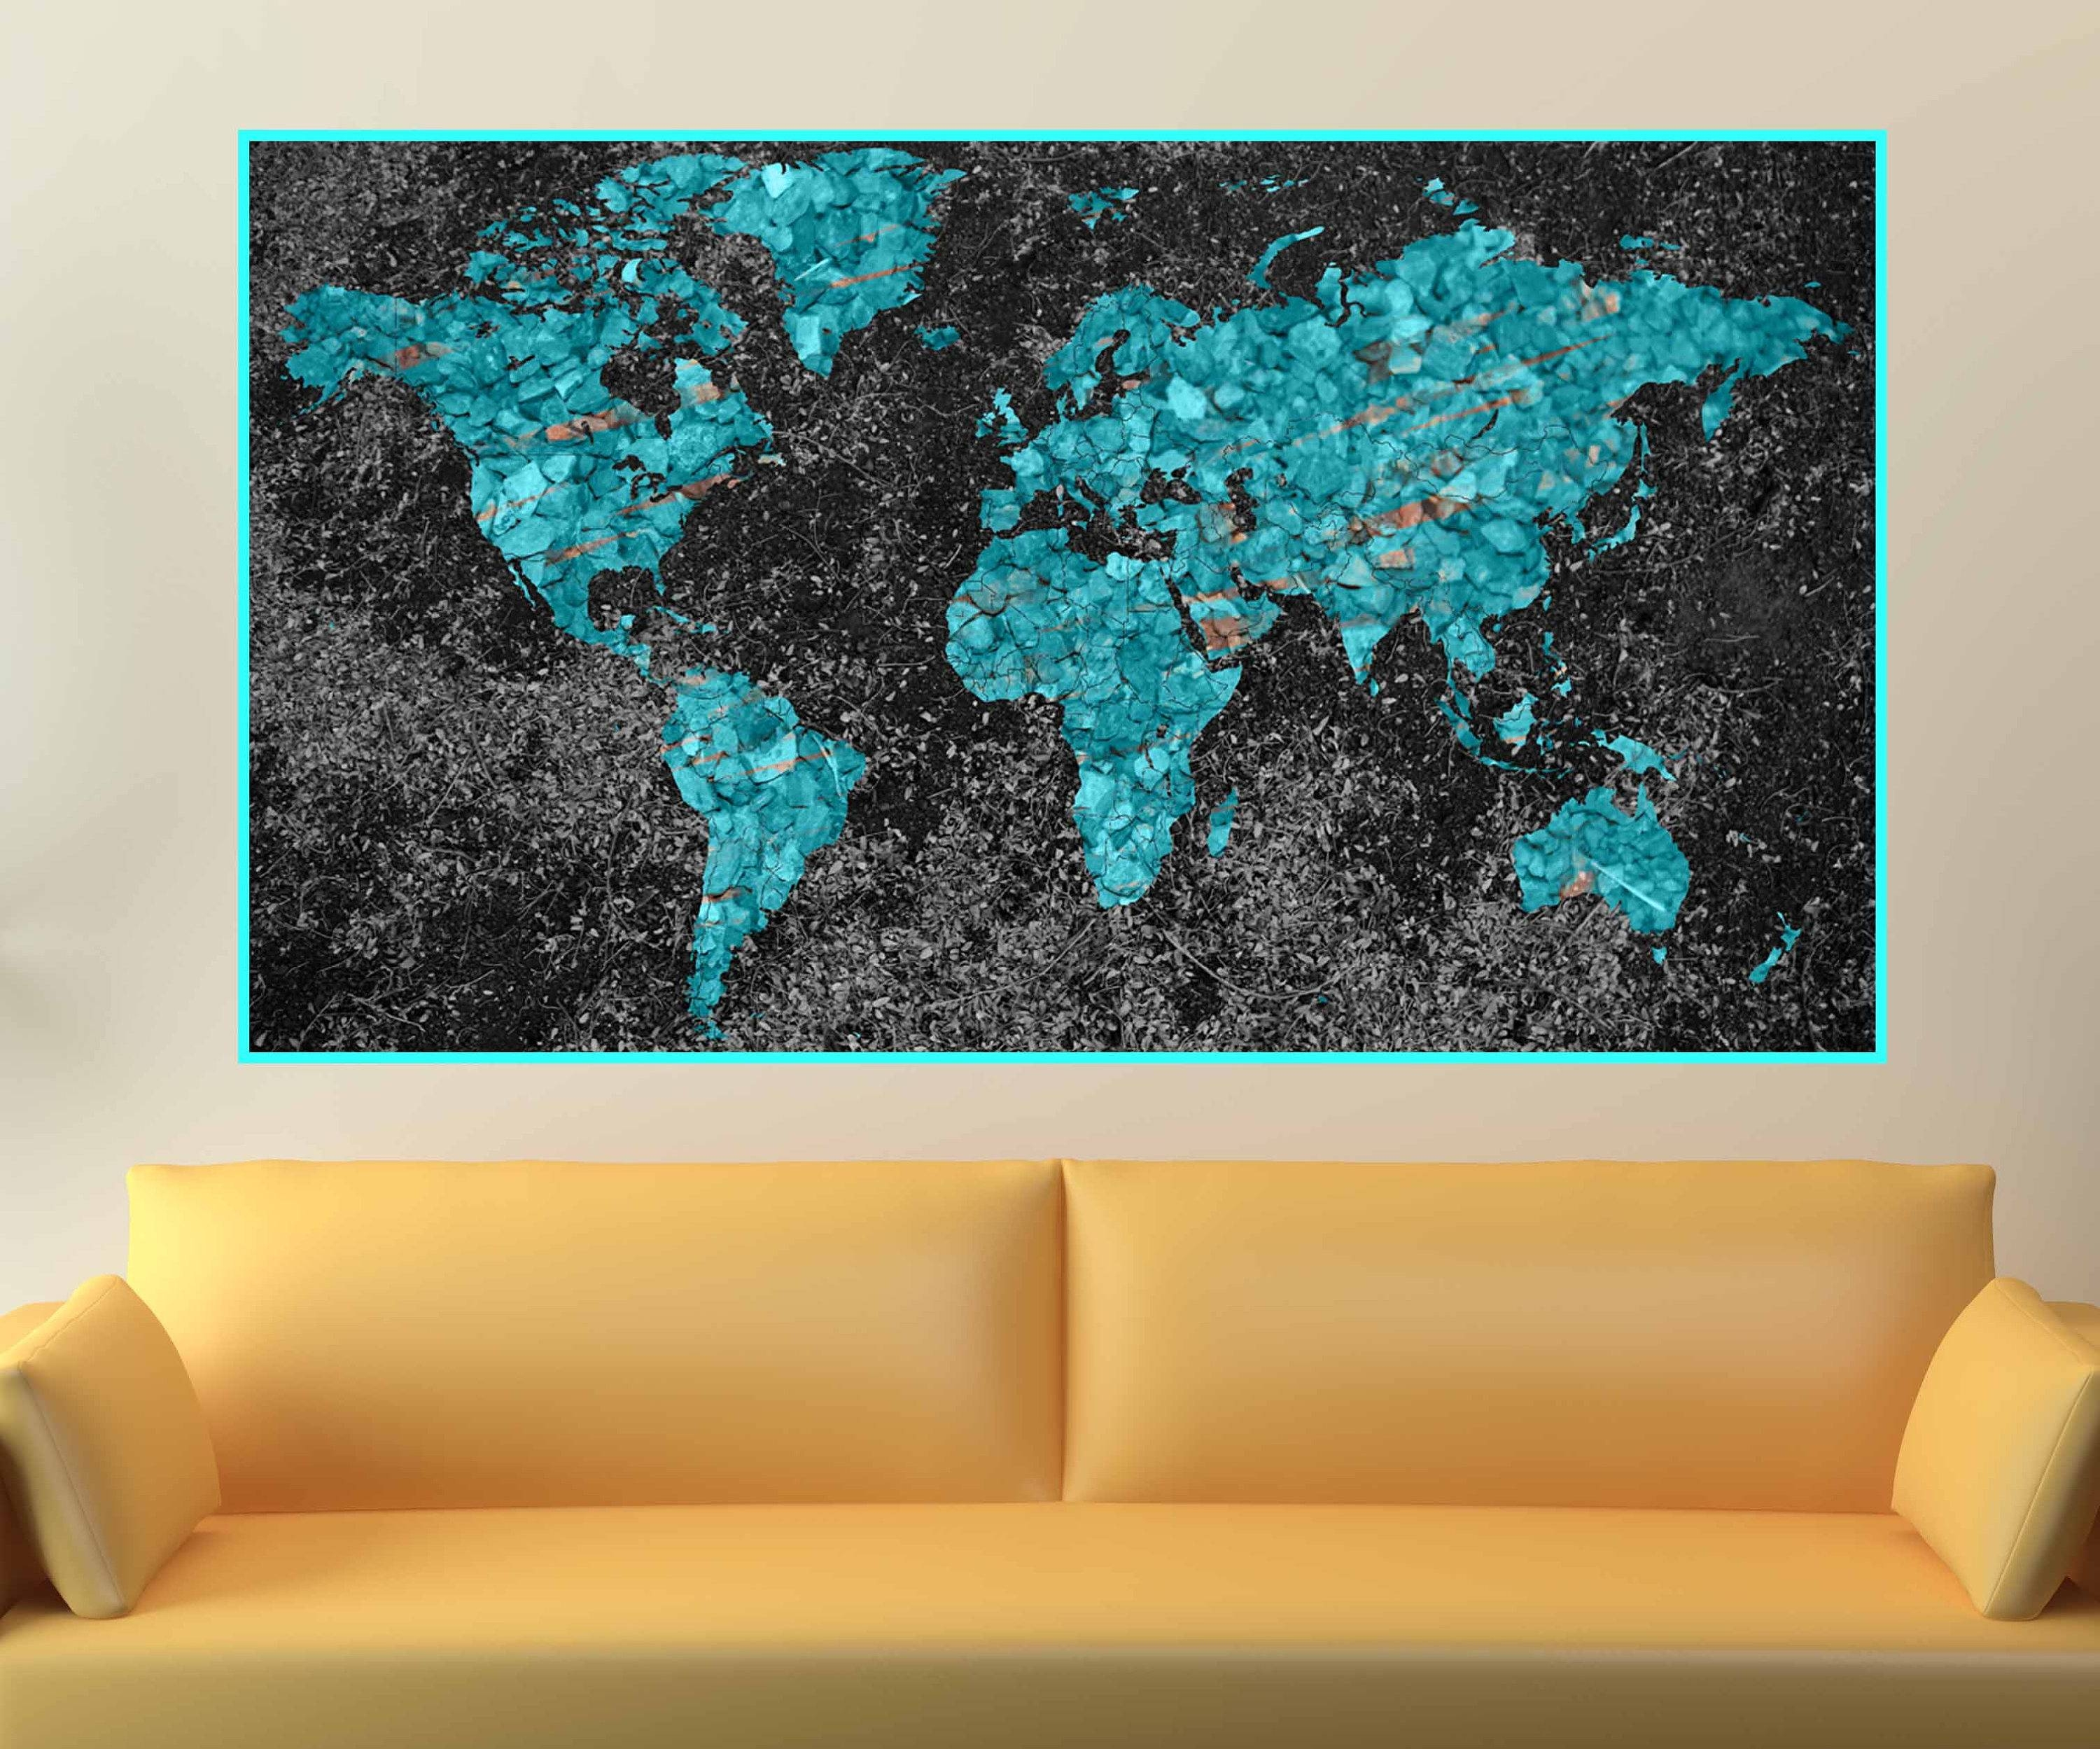 Old fashioned world map wall art composition wall painting ideas 20 best ideas of abstract world map wall art publicscrutiny Choice Image